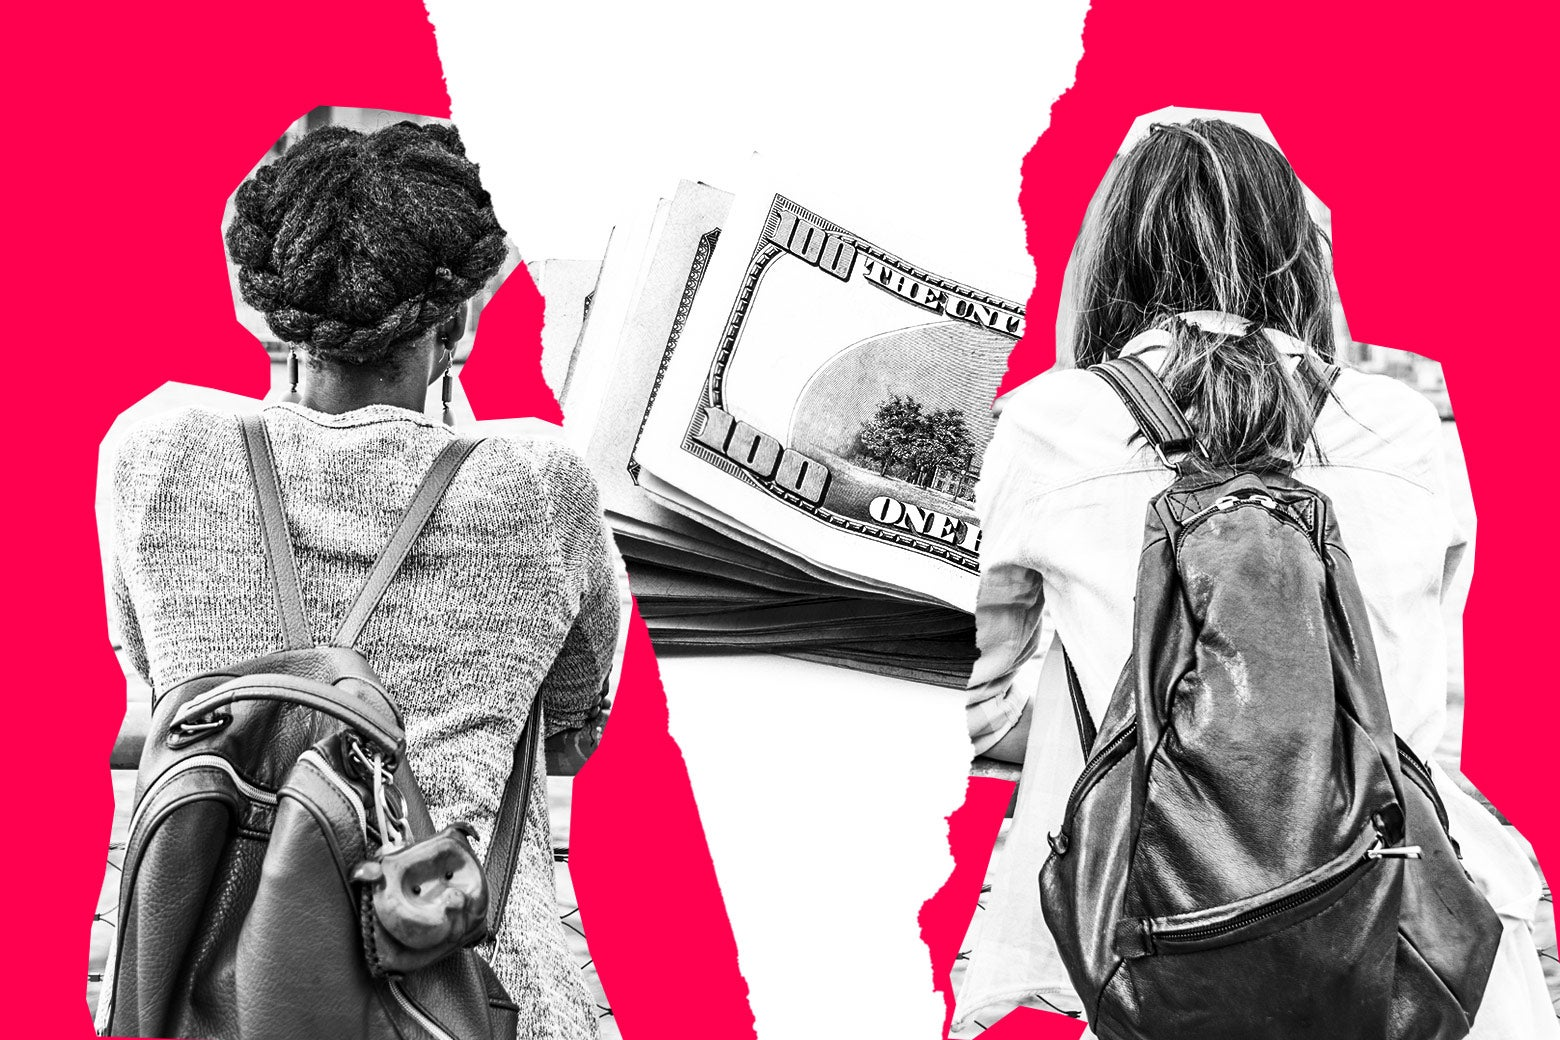 Two young adult women wearing backpacks, backs turned to camera, separated by a stack of money.